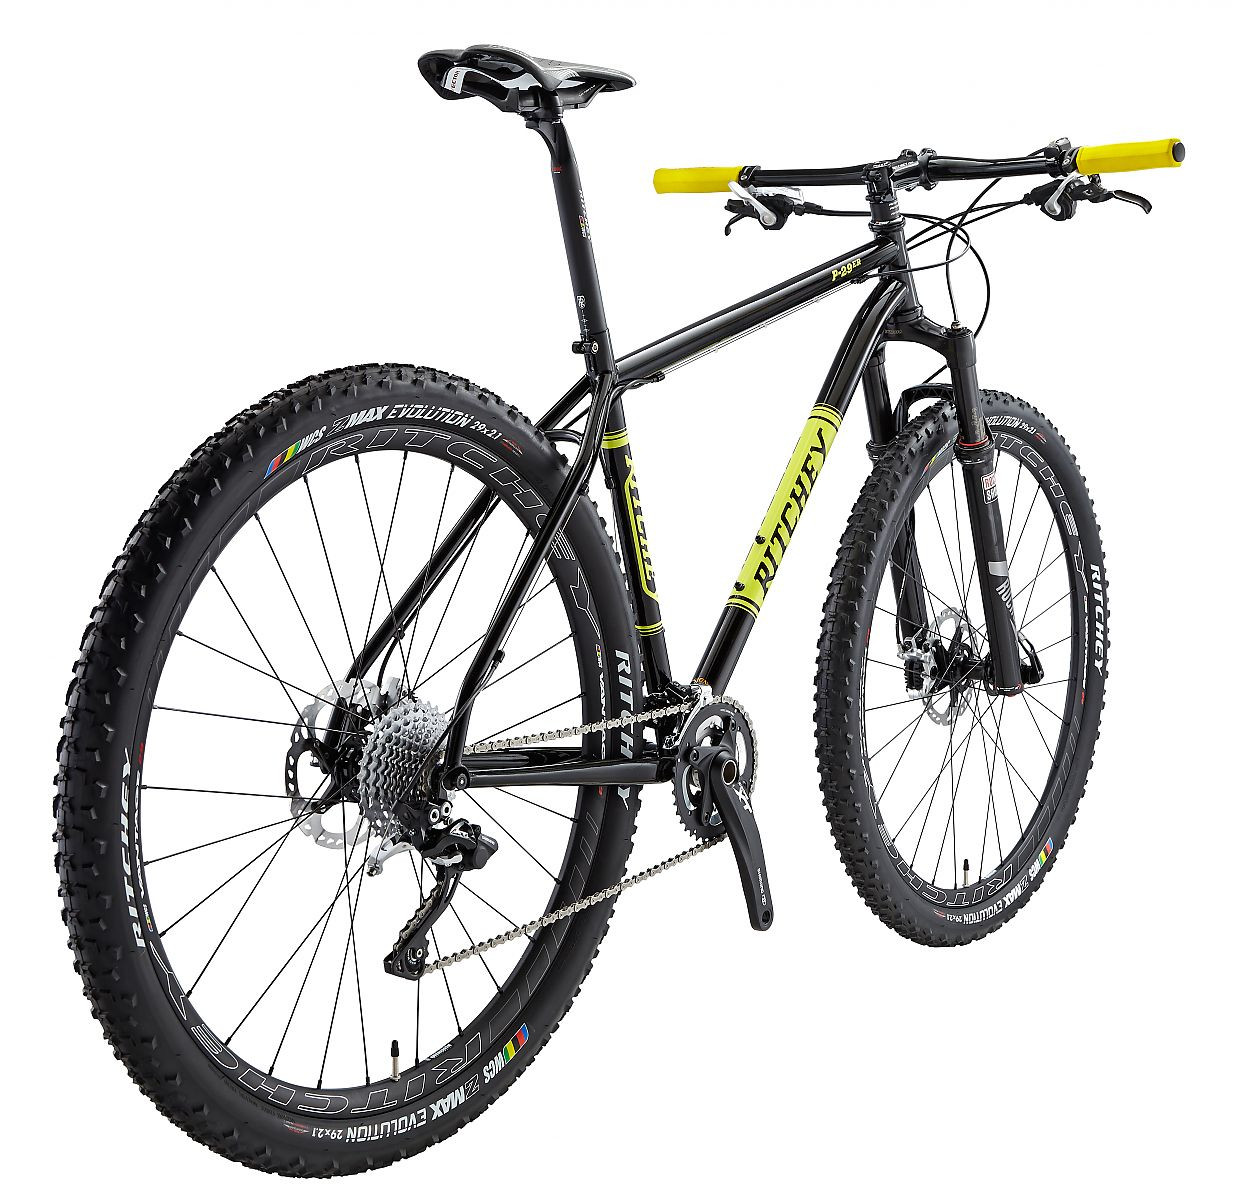 Ritchey offers complete bikes for first time in 15 years | Bicycle ...